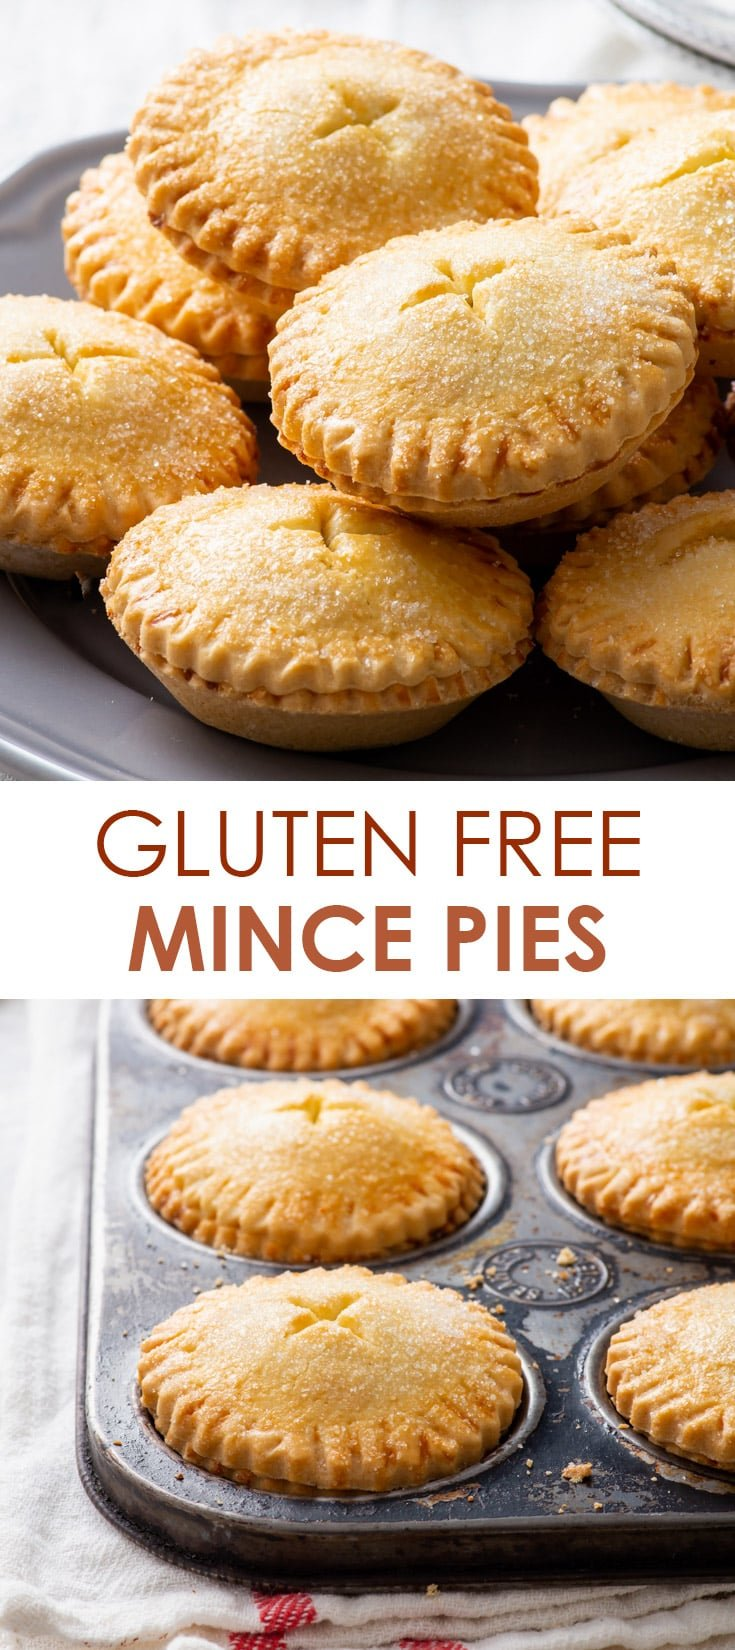 Pinterest image for gluten free mince pies.